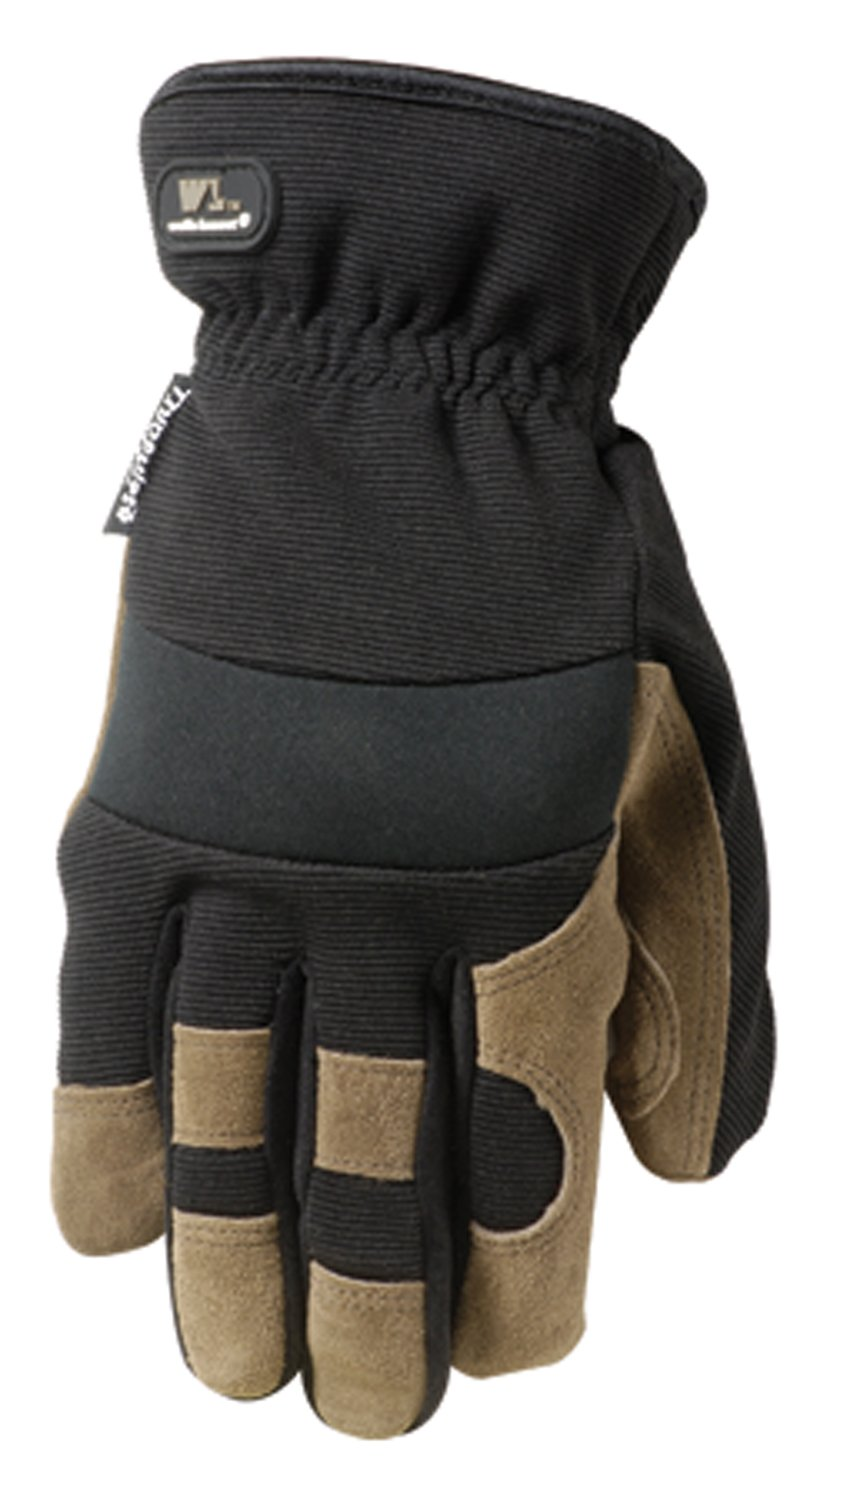 Insulated leather work gloves amazon - Wells Lamont Leather Work Gloves Insulated Suede Cowhide Large 1031l Amazon Com